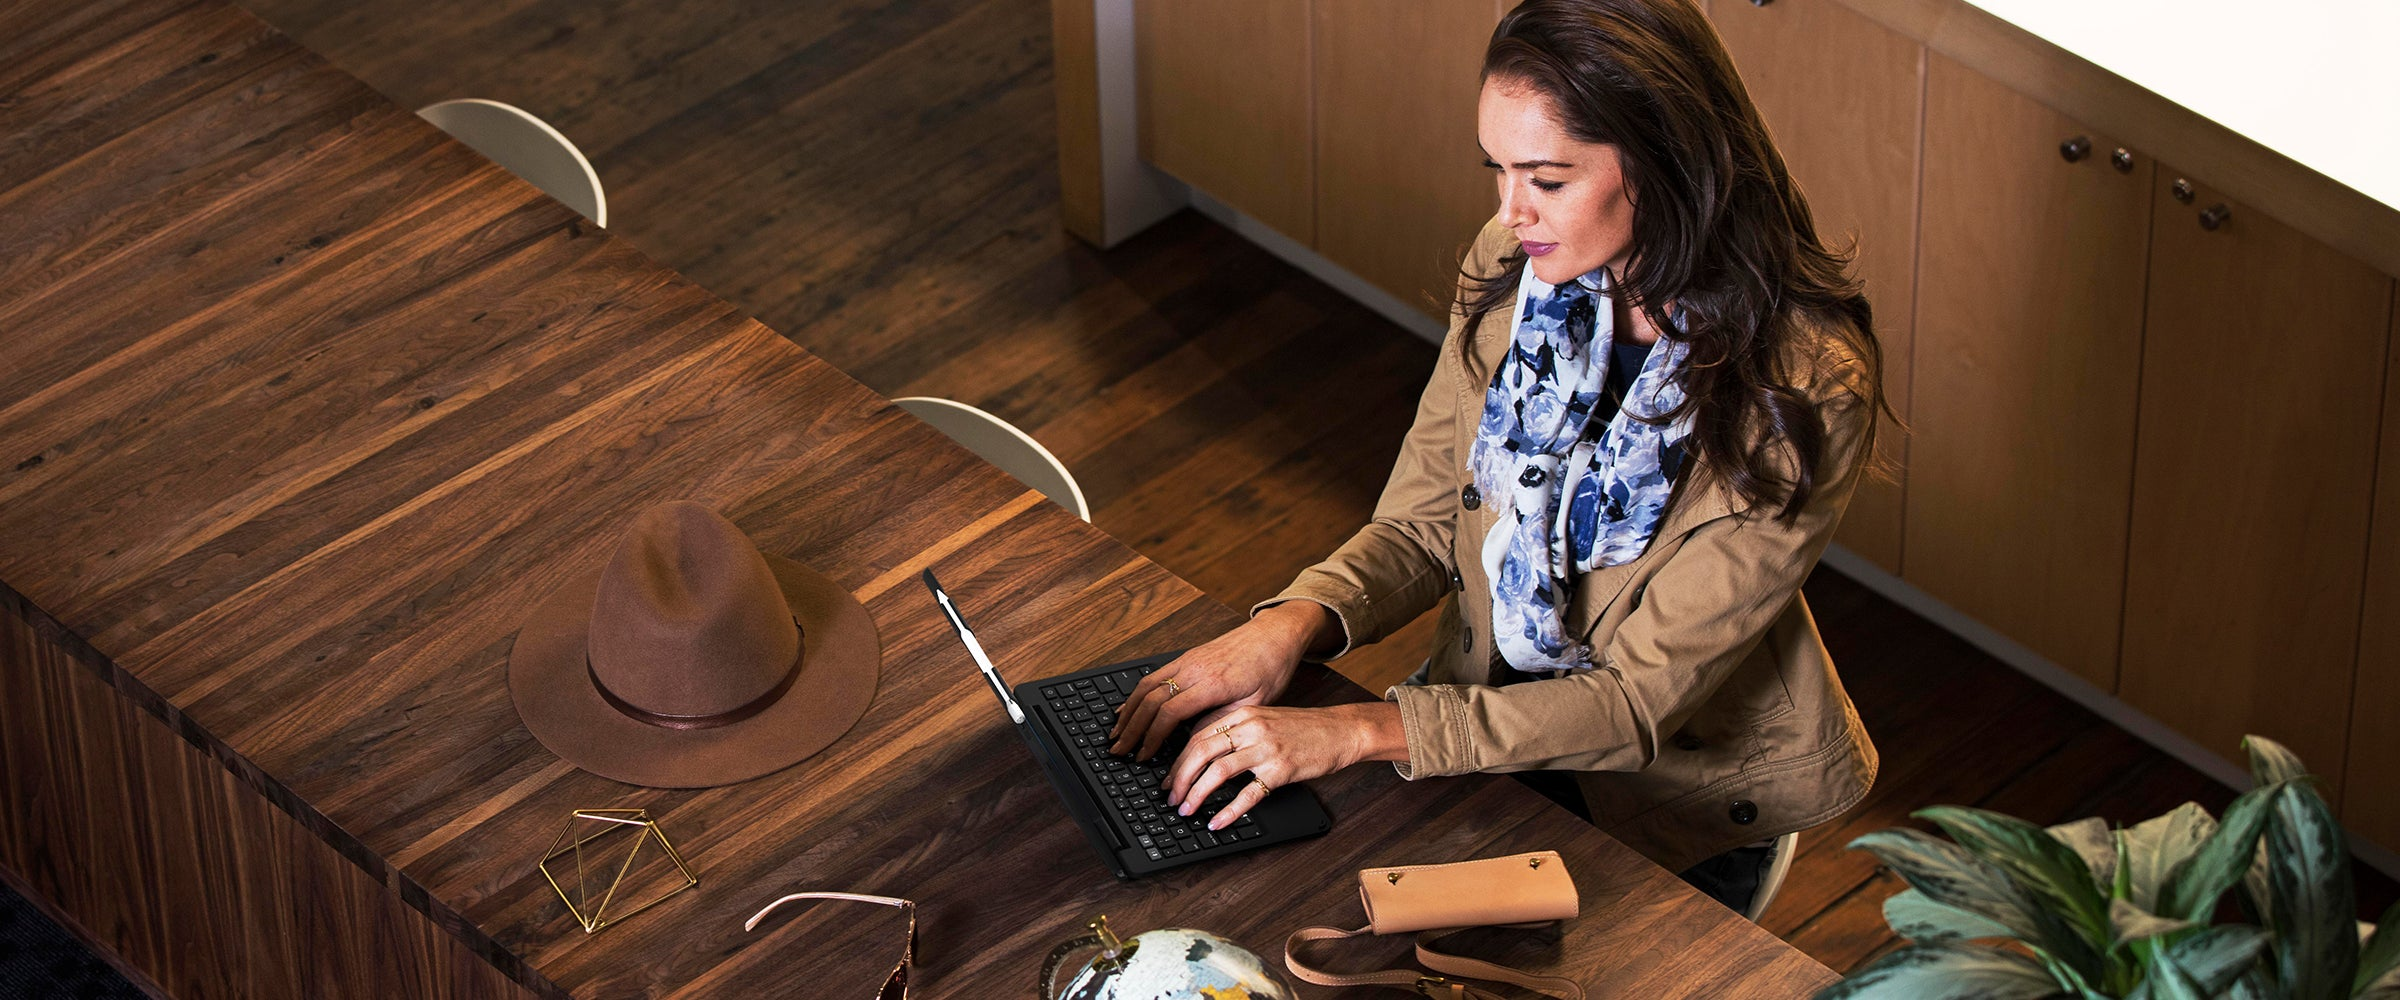 a Woman using an iPad with a ZAGG slim book case and keyboard on it.